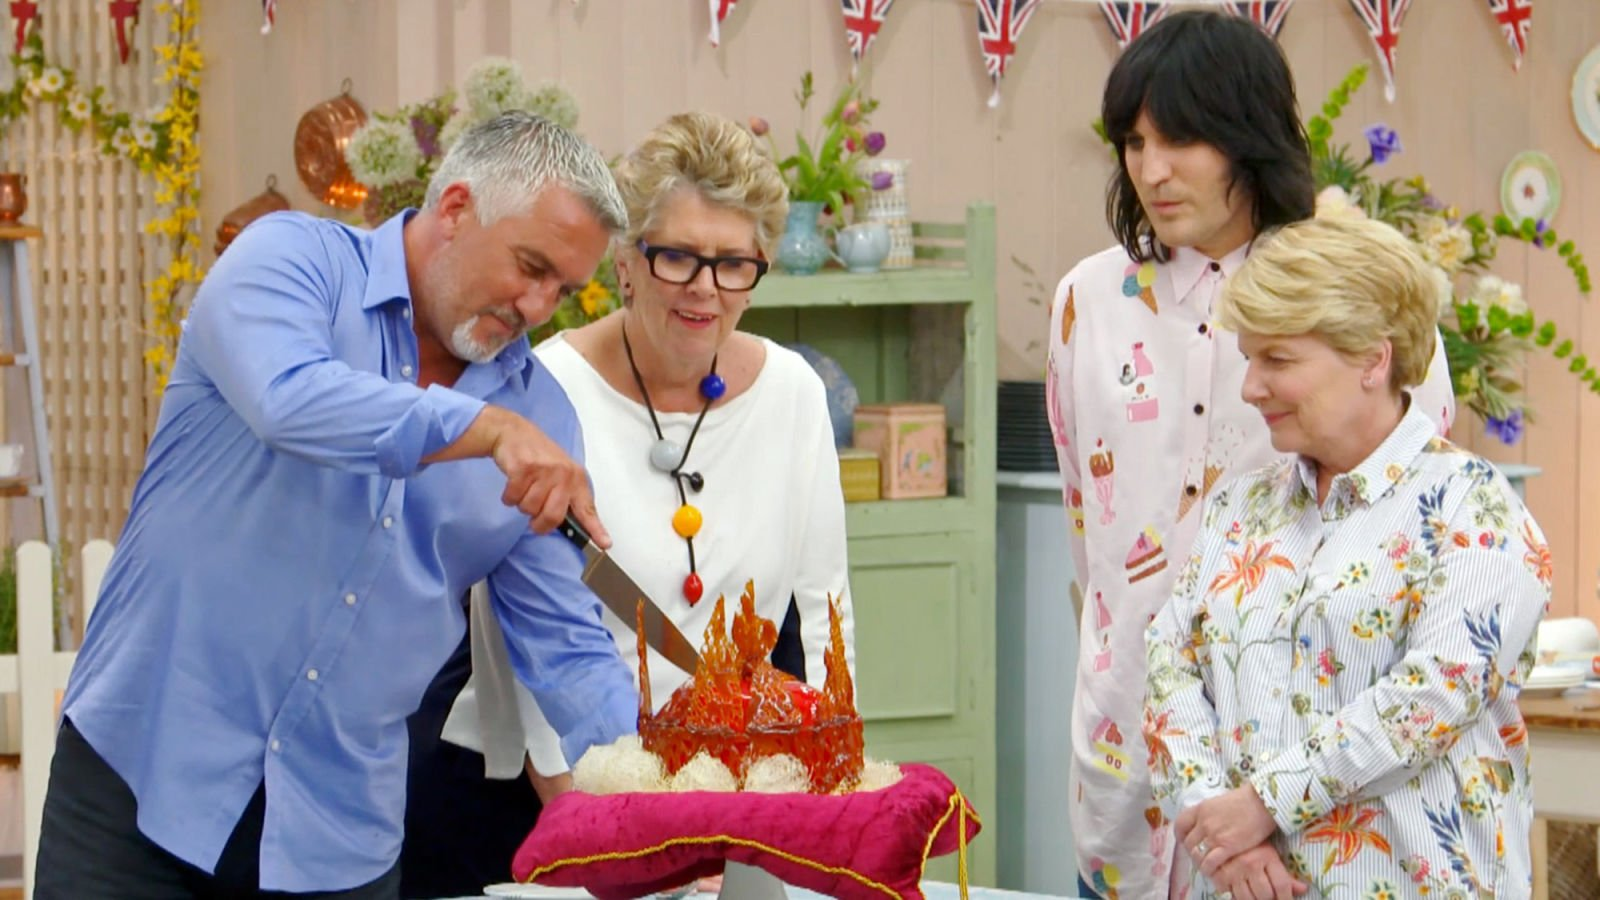 The Onion's Guide To 'The Great British Baking Show' https://t.co/Vd8mQBmrqZ https://t.co/Eap5nUWqqX